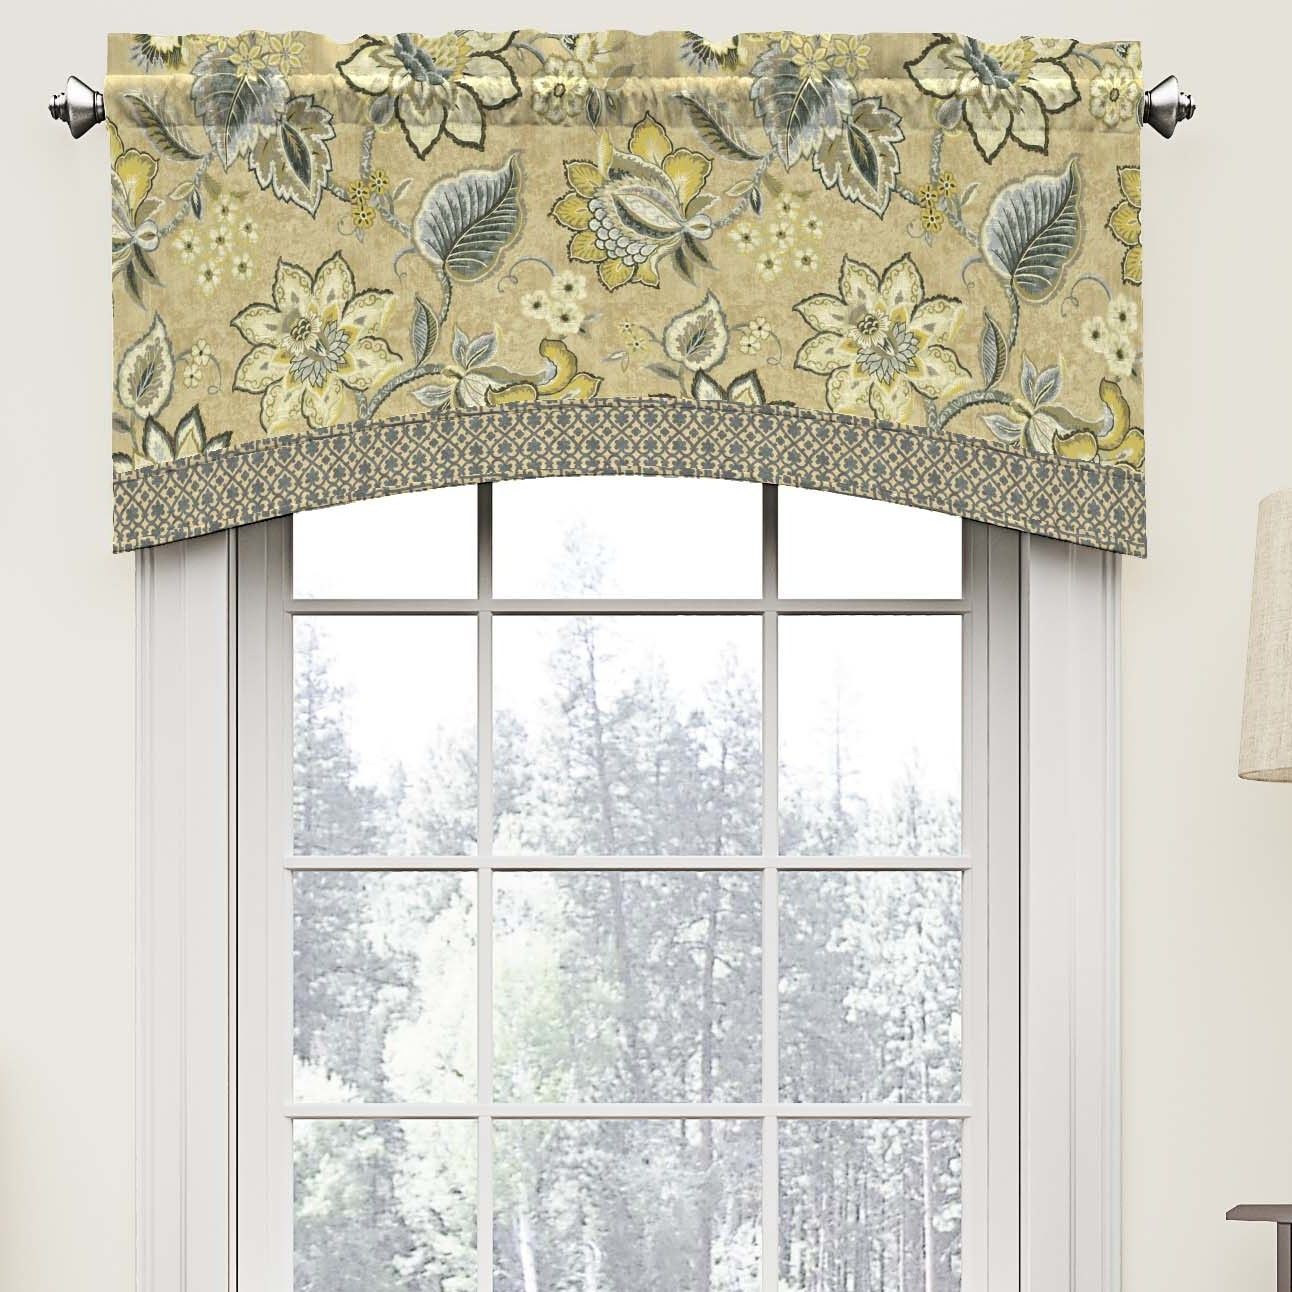 Montego 52 Arched Curtain Valance Guest Bedroom